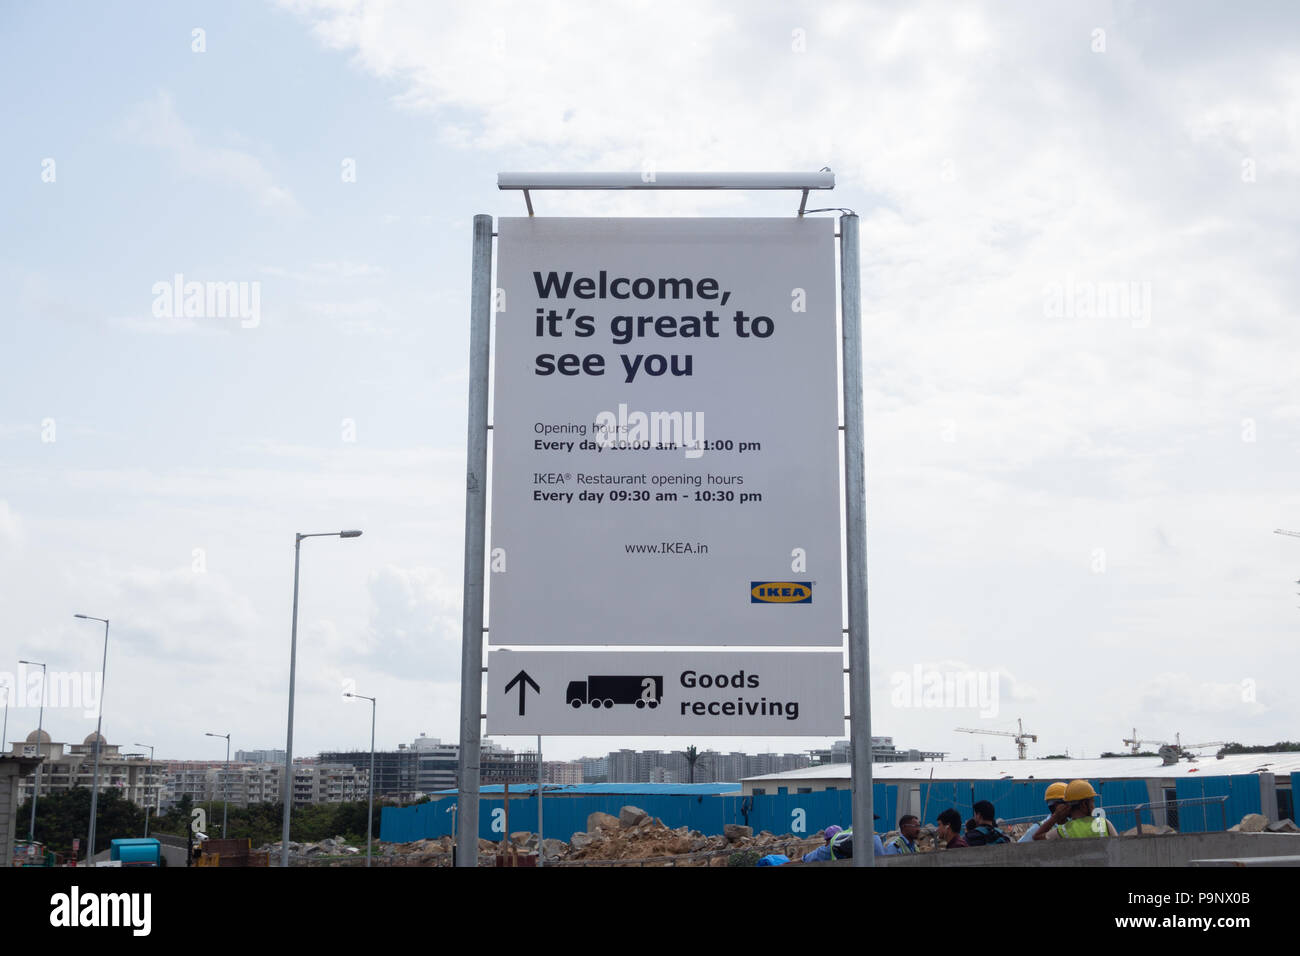 Ikea Hyderabad Stock Photos & Ikea Hyderabad Stock Images - Alamy